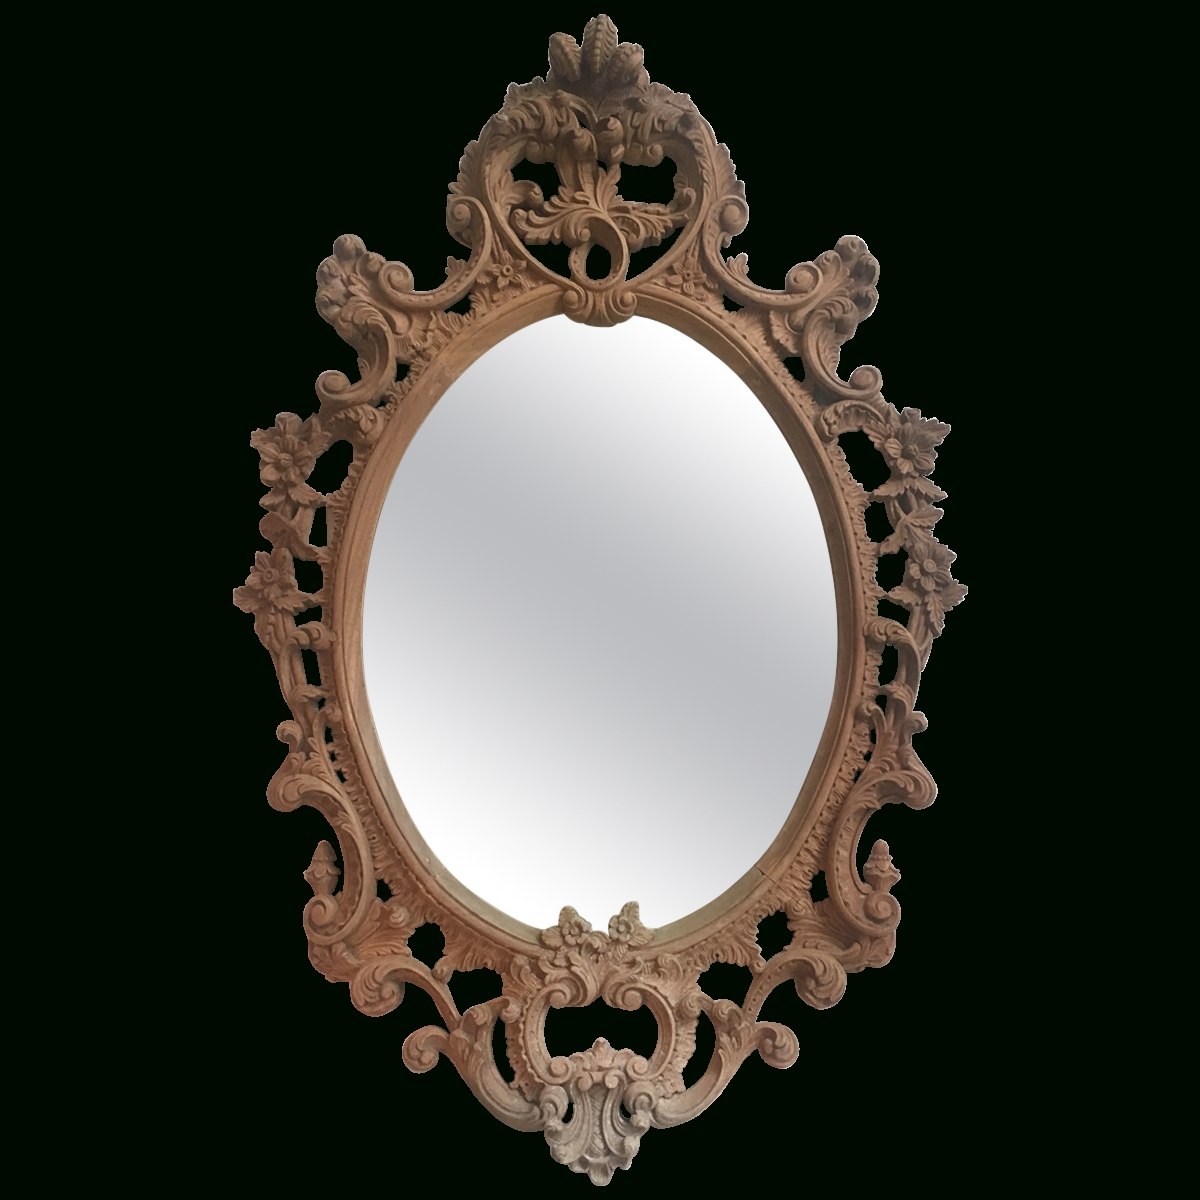 Viyet - Designer Furniture - Accessories - Vintage Rococo Style pertaining to Rococo Style Mirrors (Image 15 of 15)